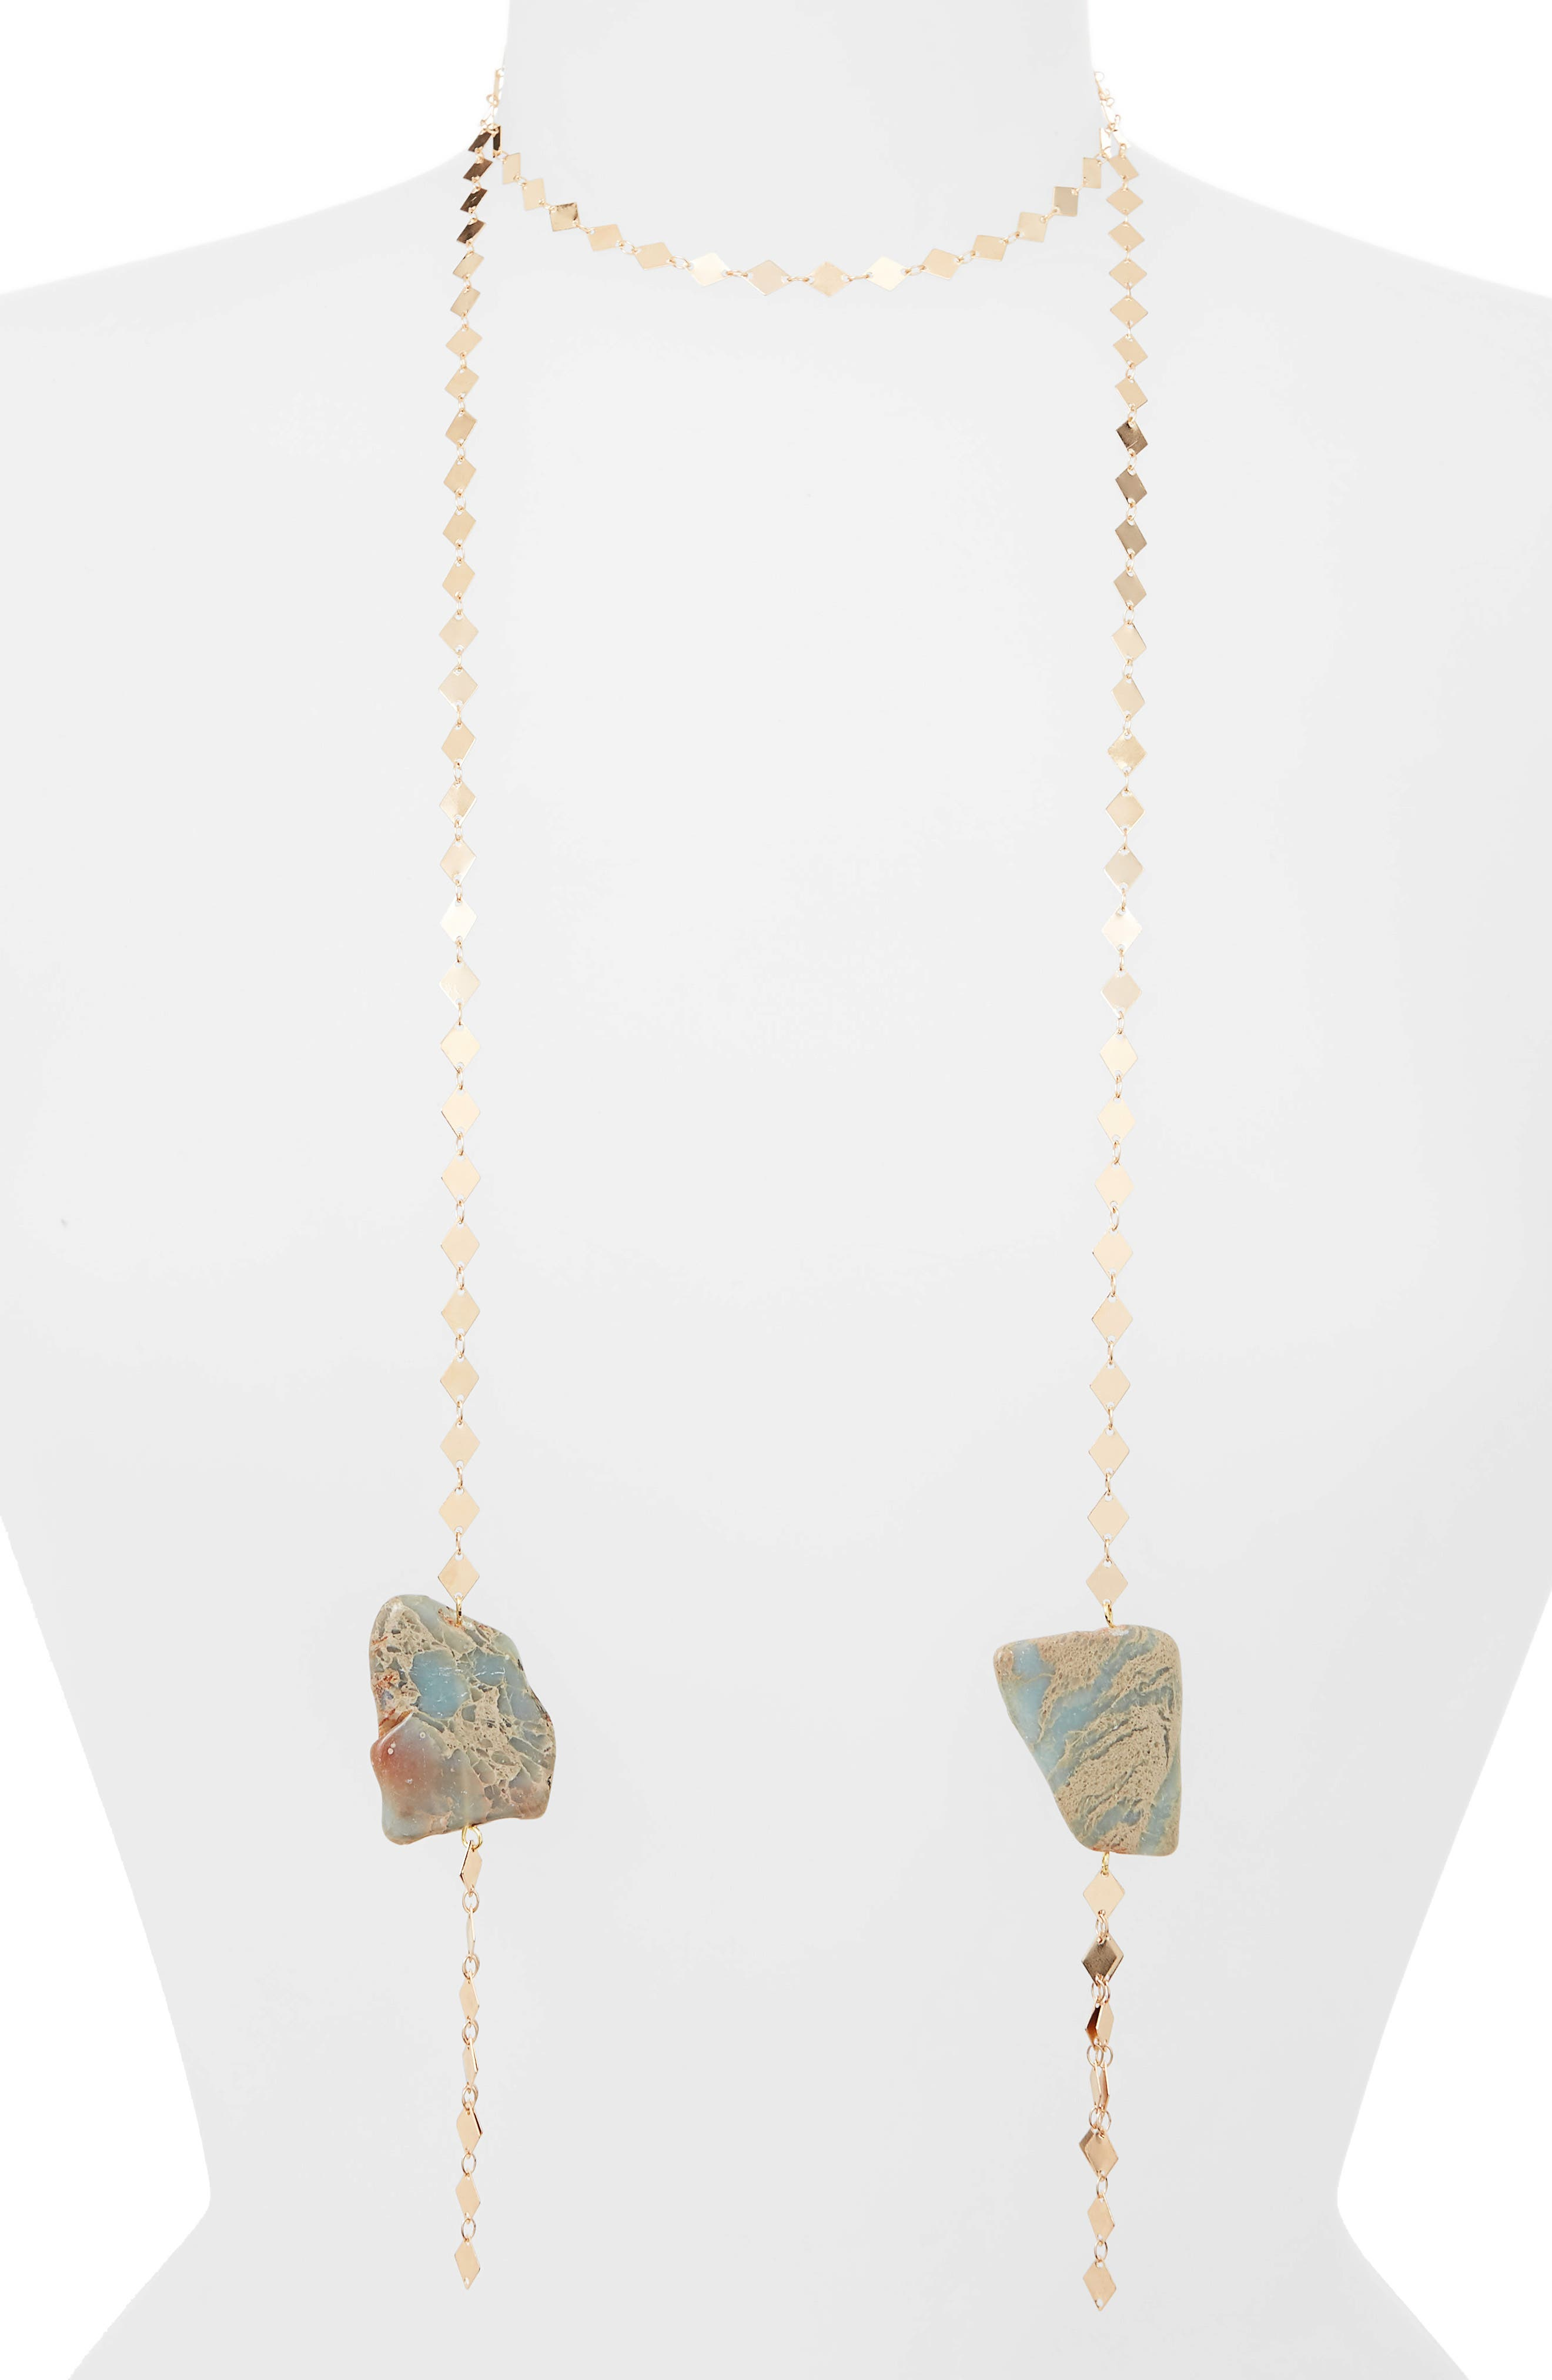 Becca Lariat Necklace,                             Main thumbnail 1, color,                             Blue/ Gold